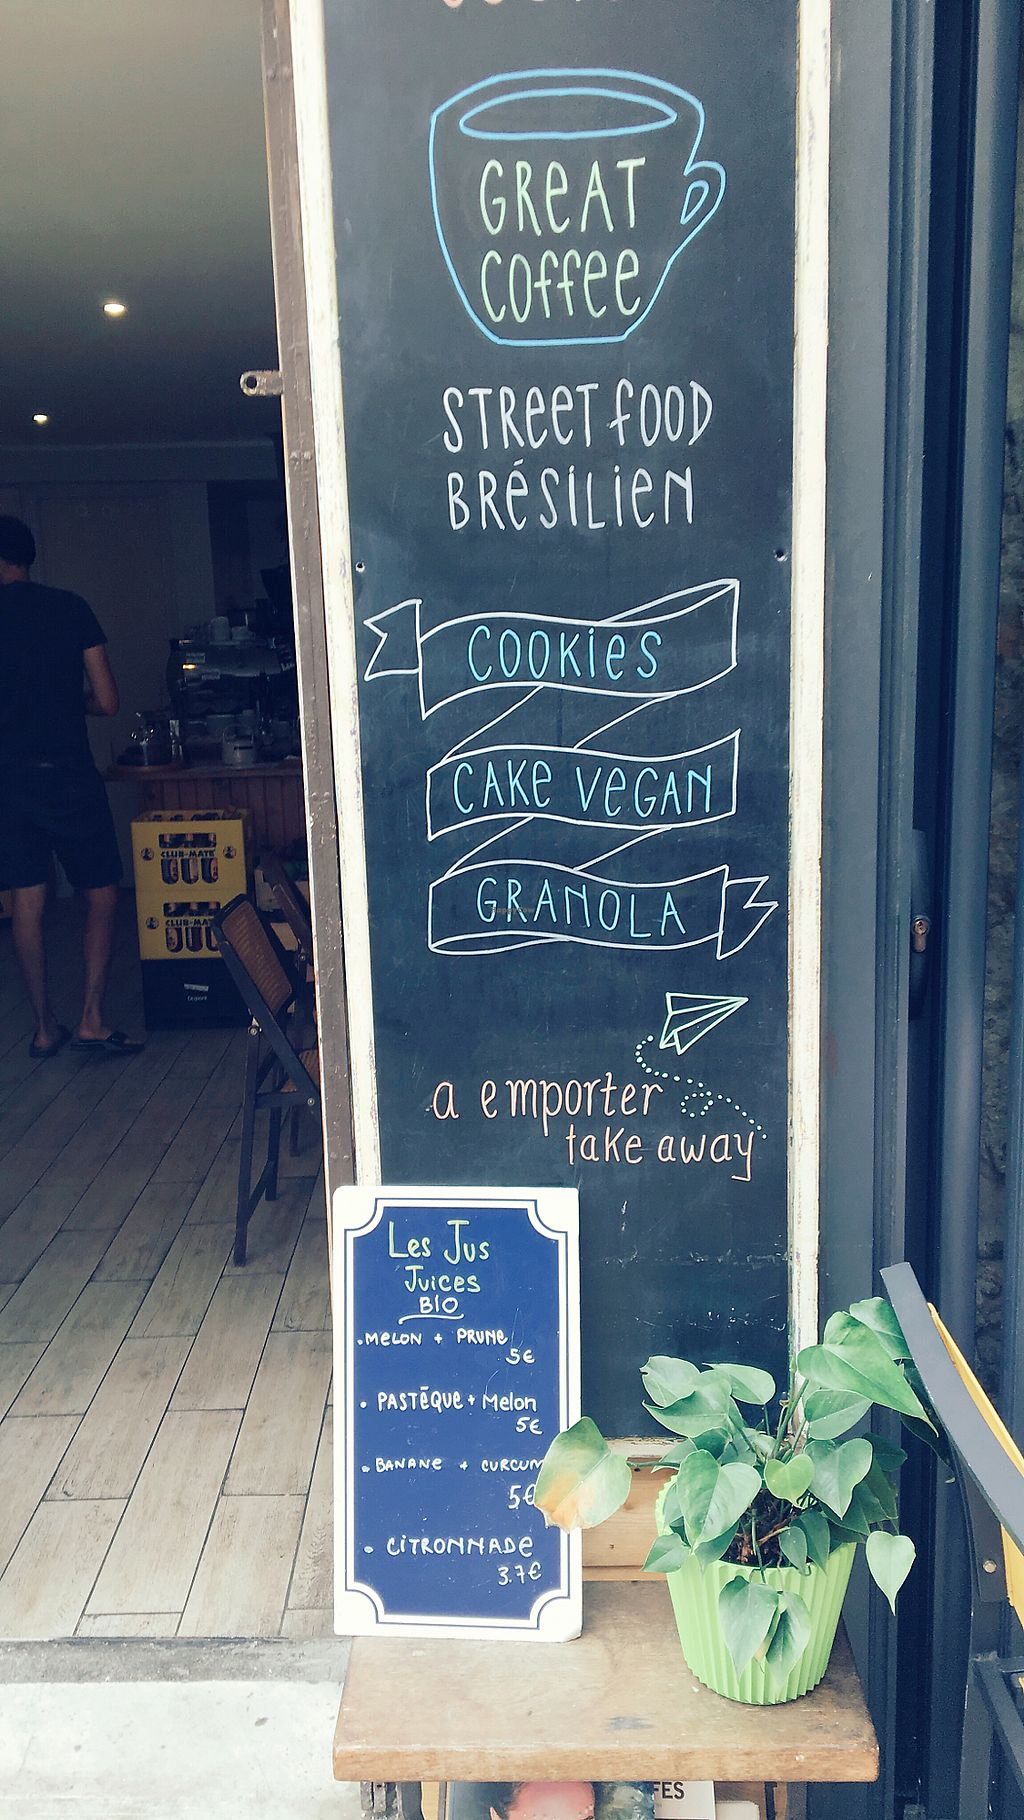 "Photo of Brasilia Boite a Cafe  by <a href=""/members/profile/Meadhbh91"">Meadhbh91</a> <br/>The front of the cafe  <br/> August 11, 2017  - <a href='/contact/abuse/image/98296/291534'>Report</a>"